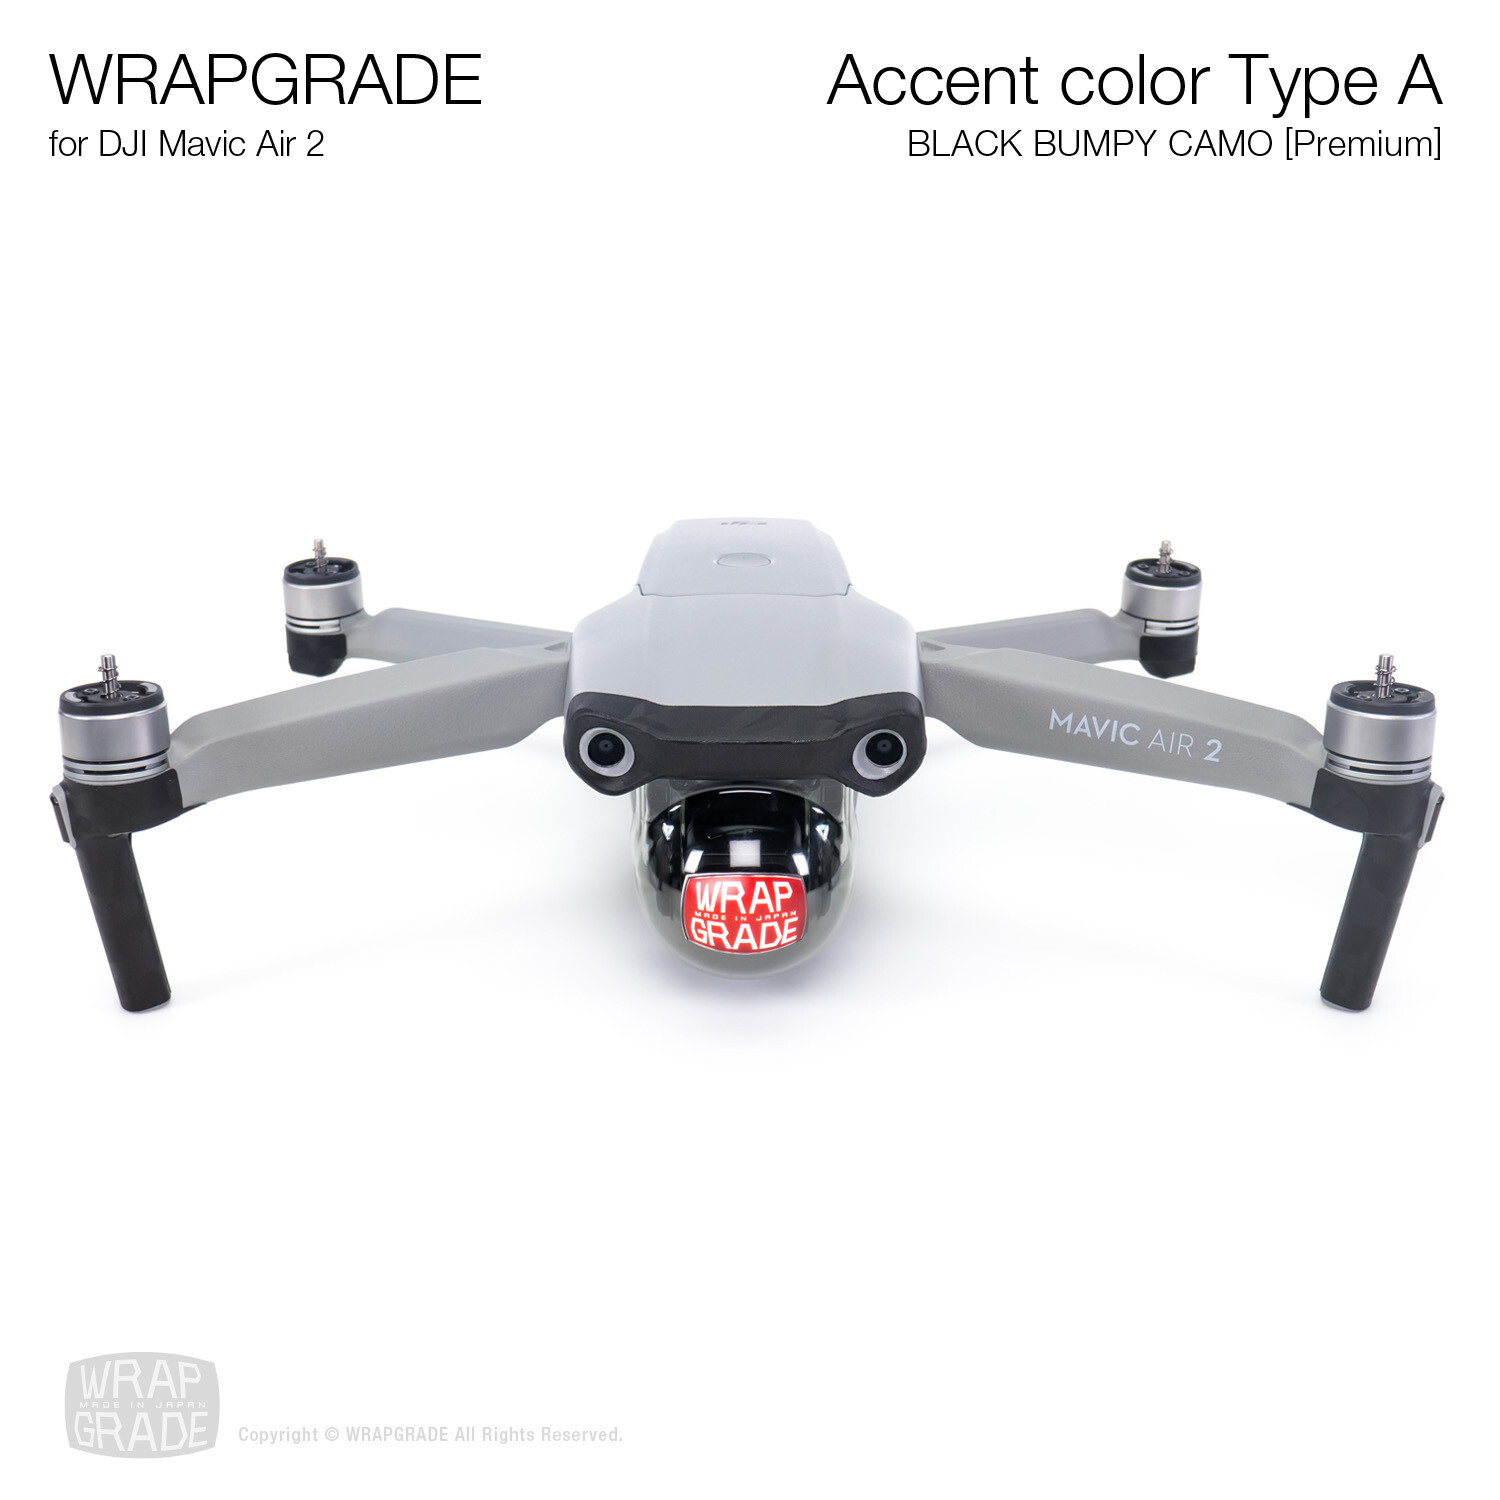 Wrapgrade for DJI Mavic Air 2 | Accent Color A (BLACK BUMPY CAMO)